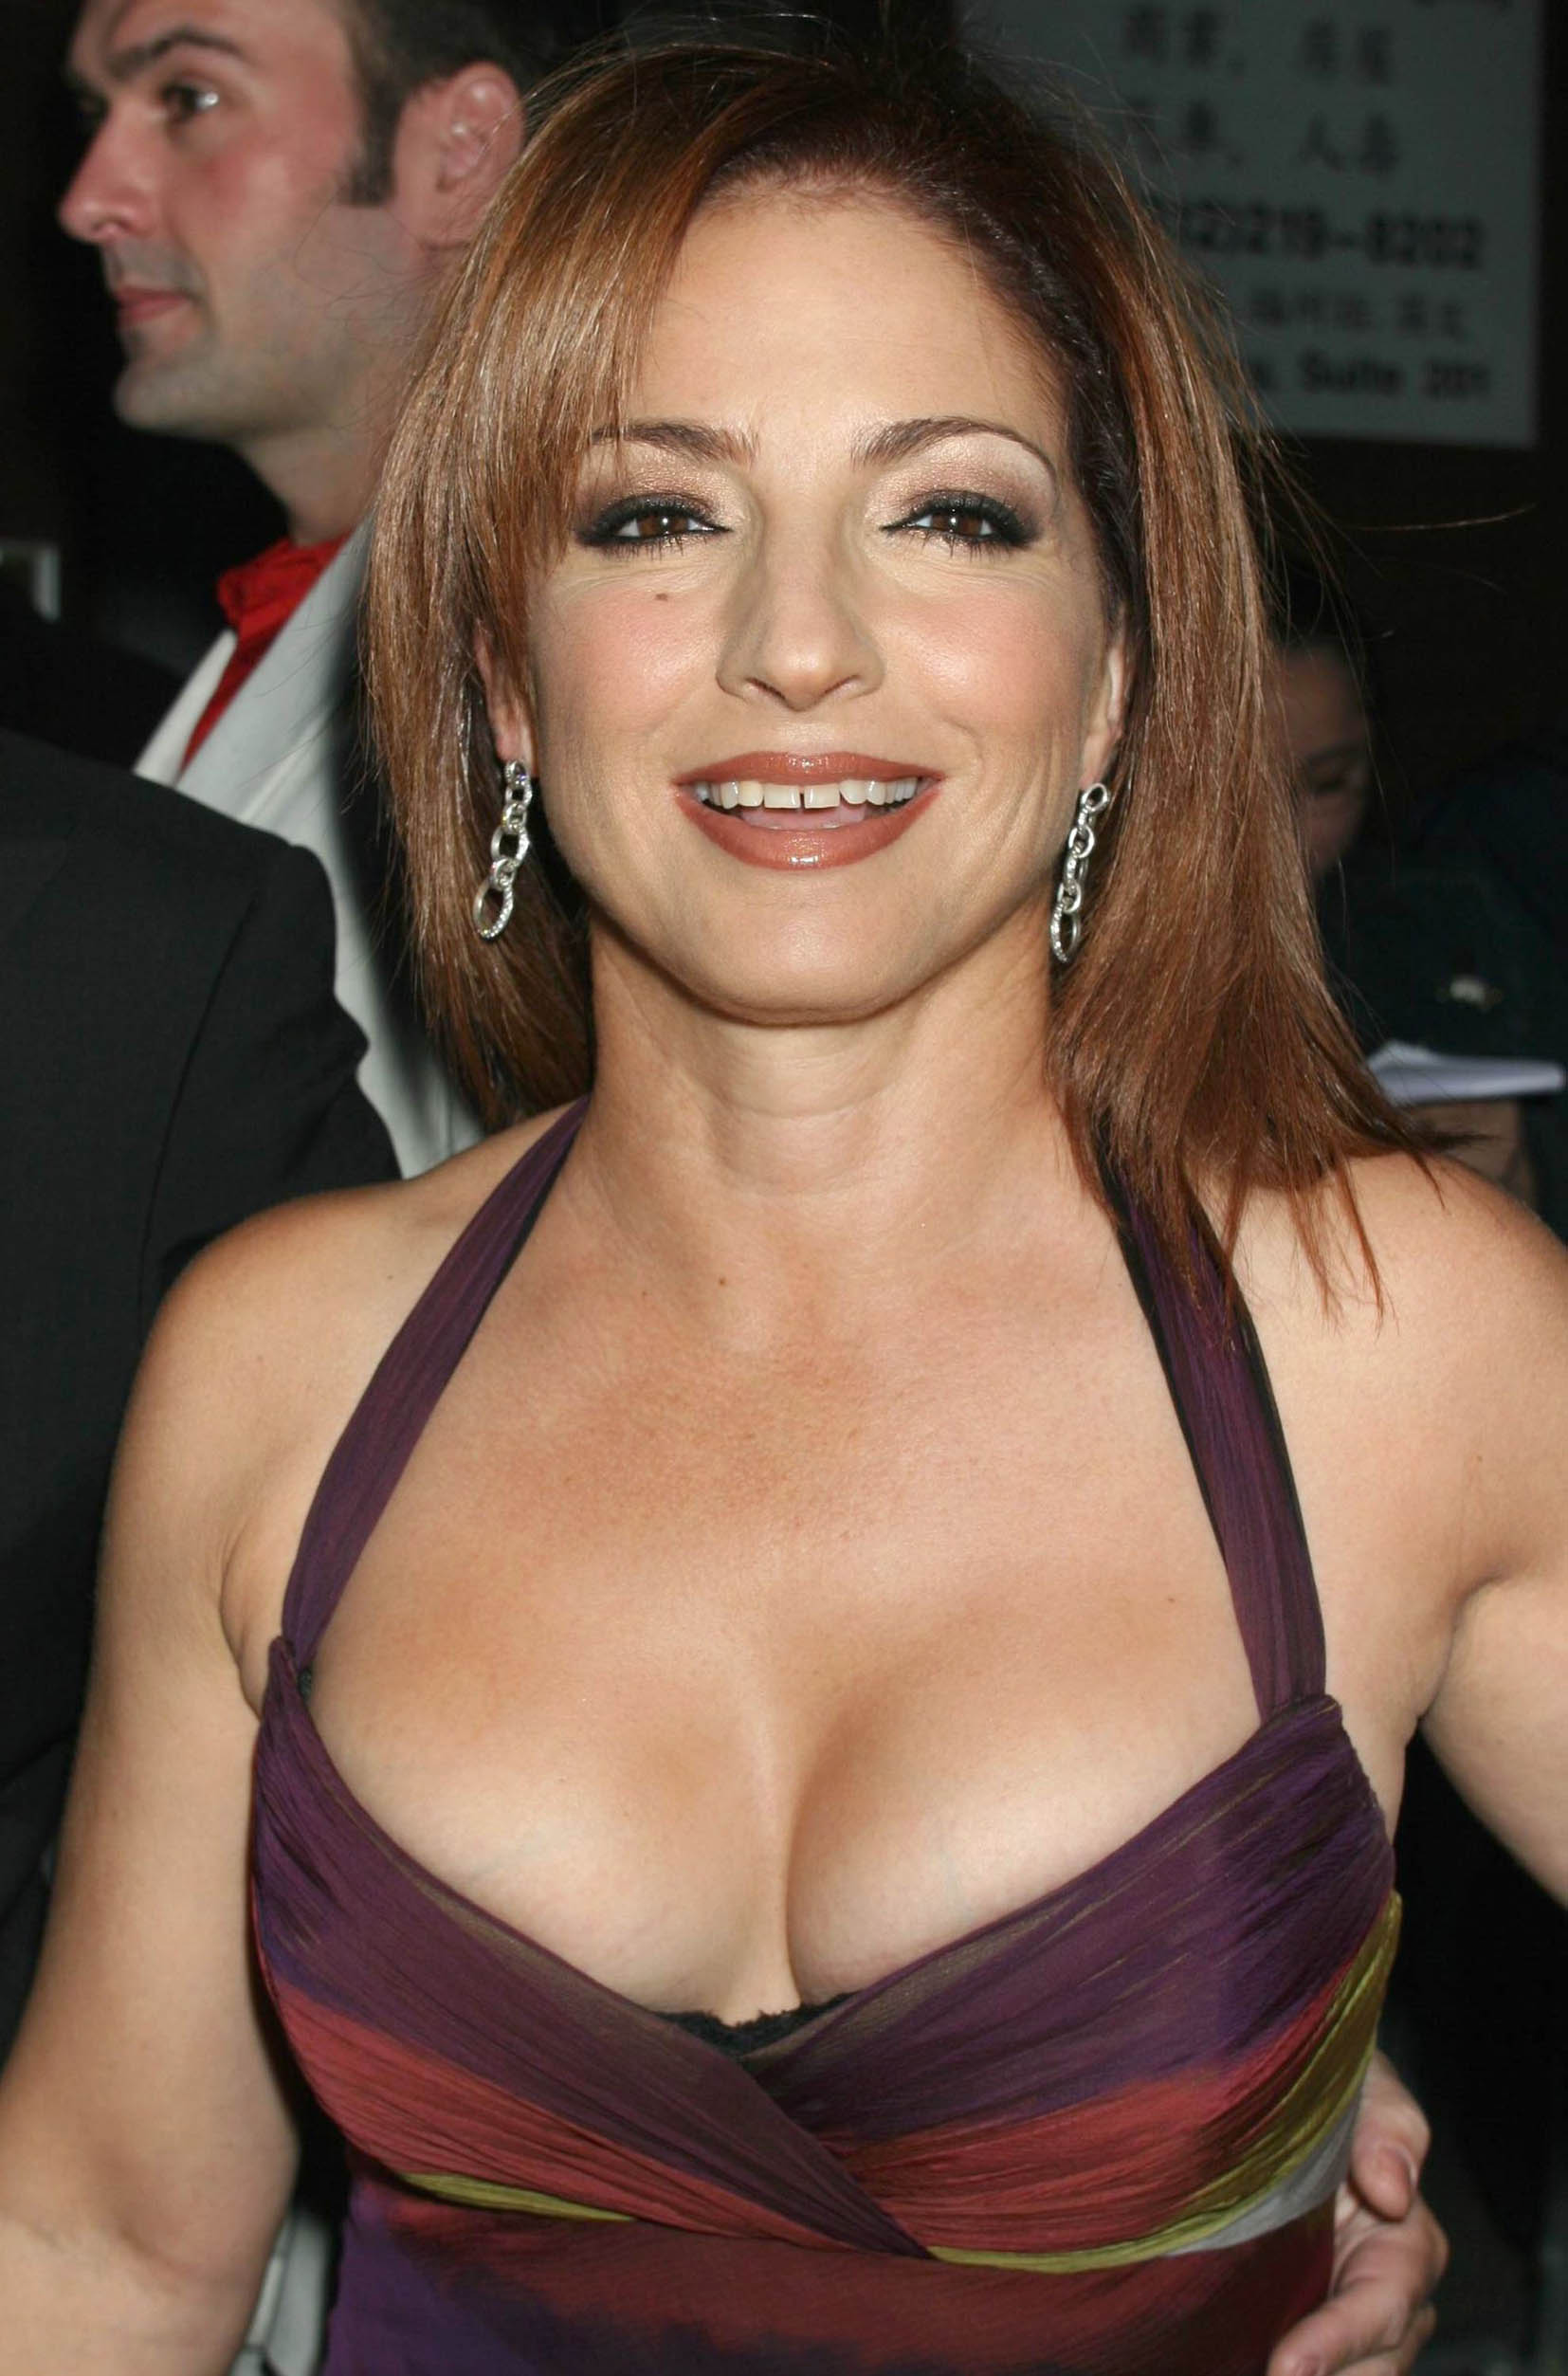 Sexy pictures of gloria estefan